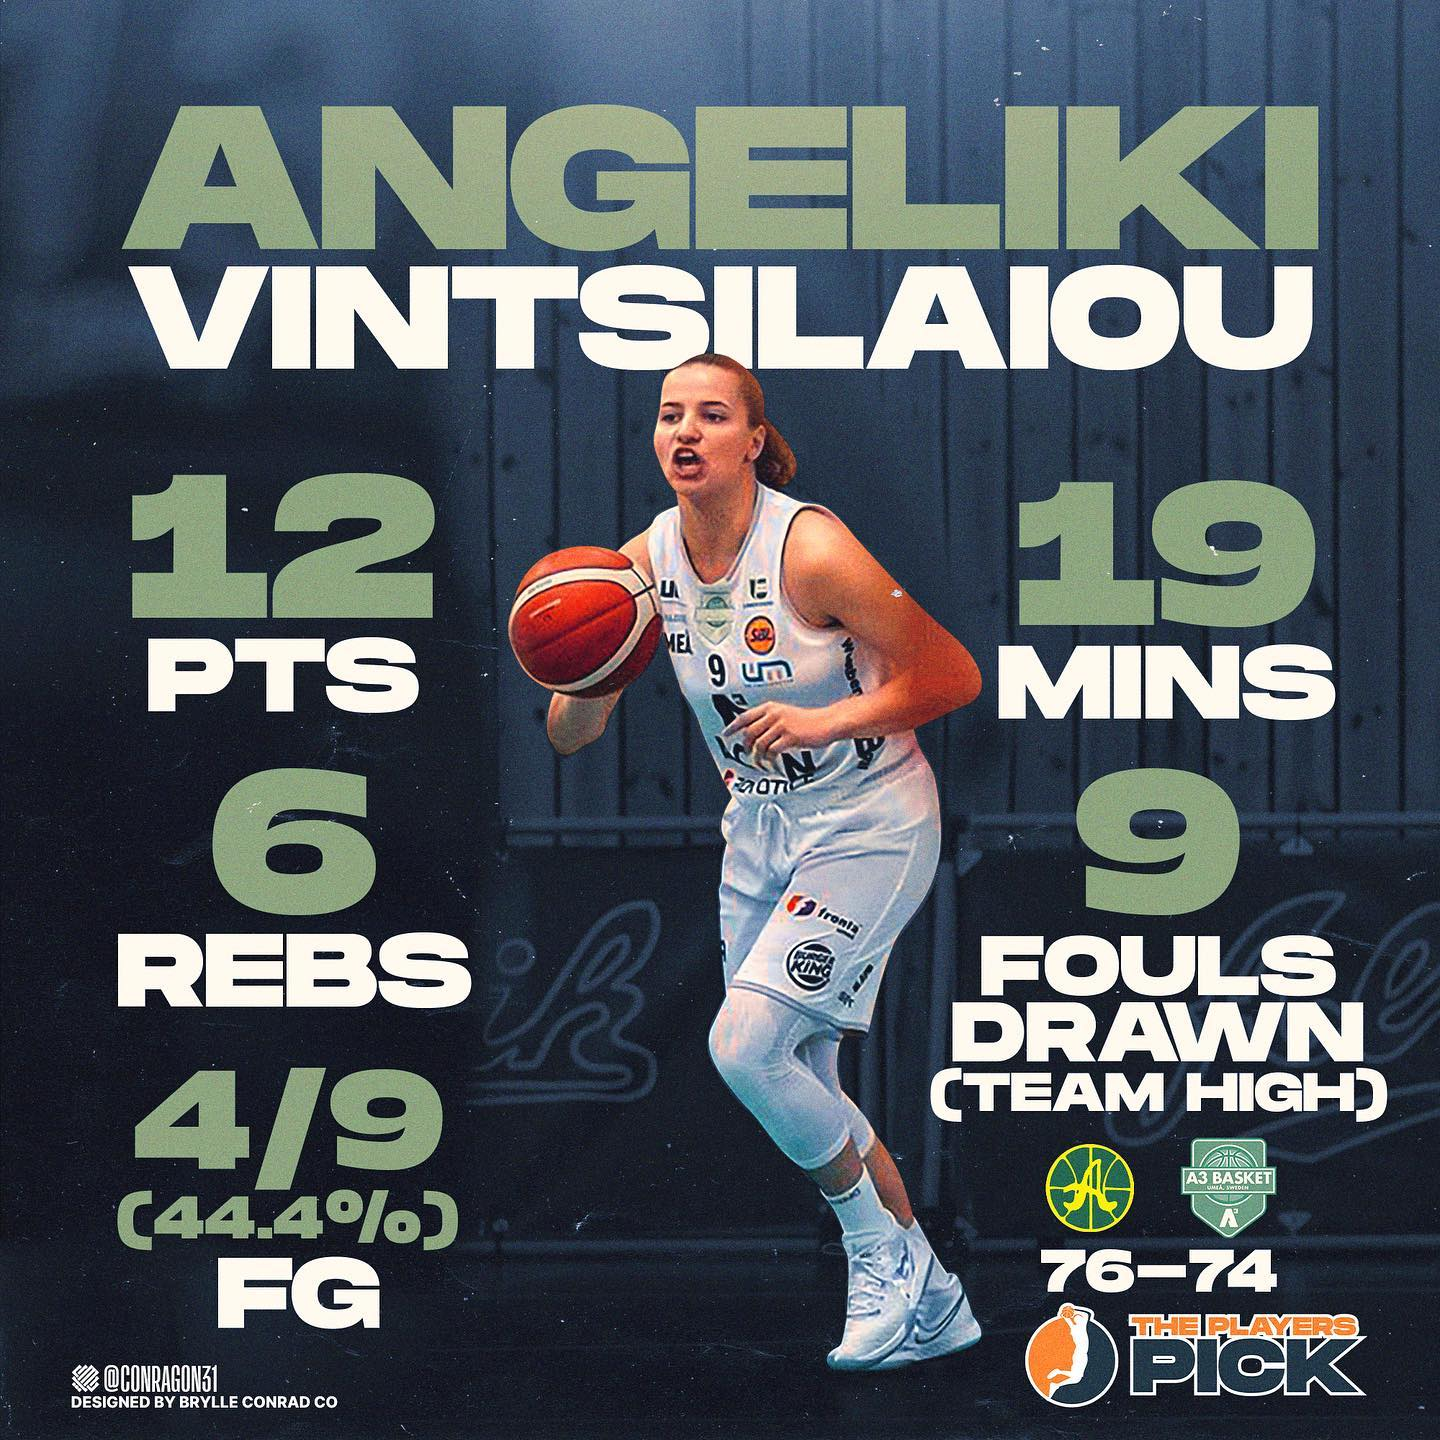 12 points – 6 rebounds – 9 fouls drawn in 19′ debut for A.Vintsilaiou with the Champions of Sweden!